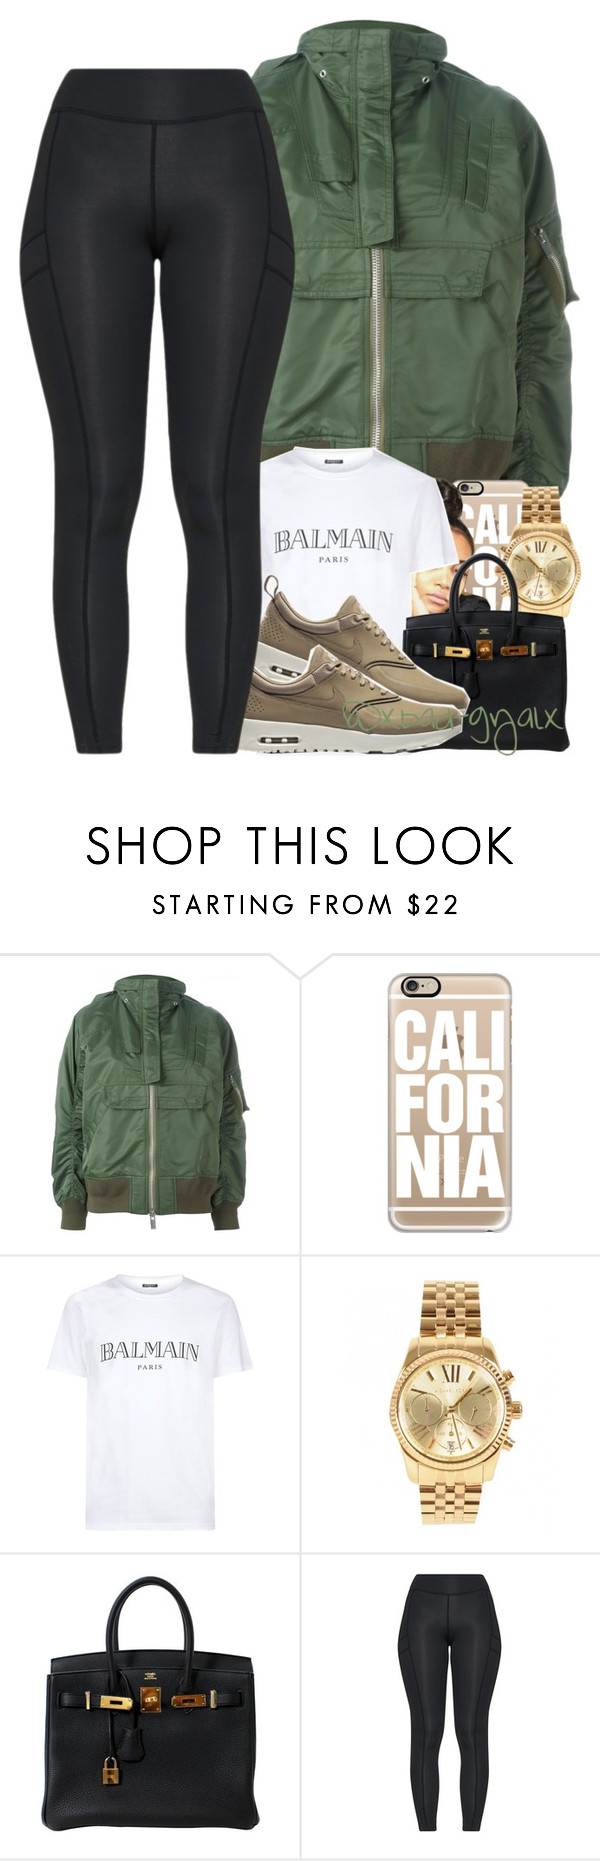 """""""{I made a decision last night, that I would die for it}"""" by xbad-gyalx ❤ liked on Polyvore featuring Sacai, Casetify, Balmain, Michael Kors and Hermès"""